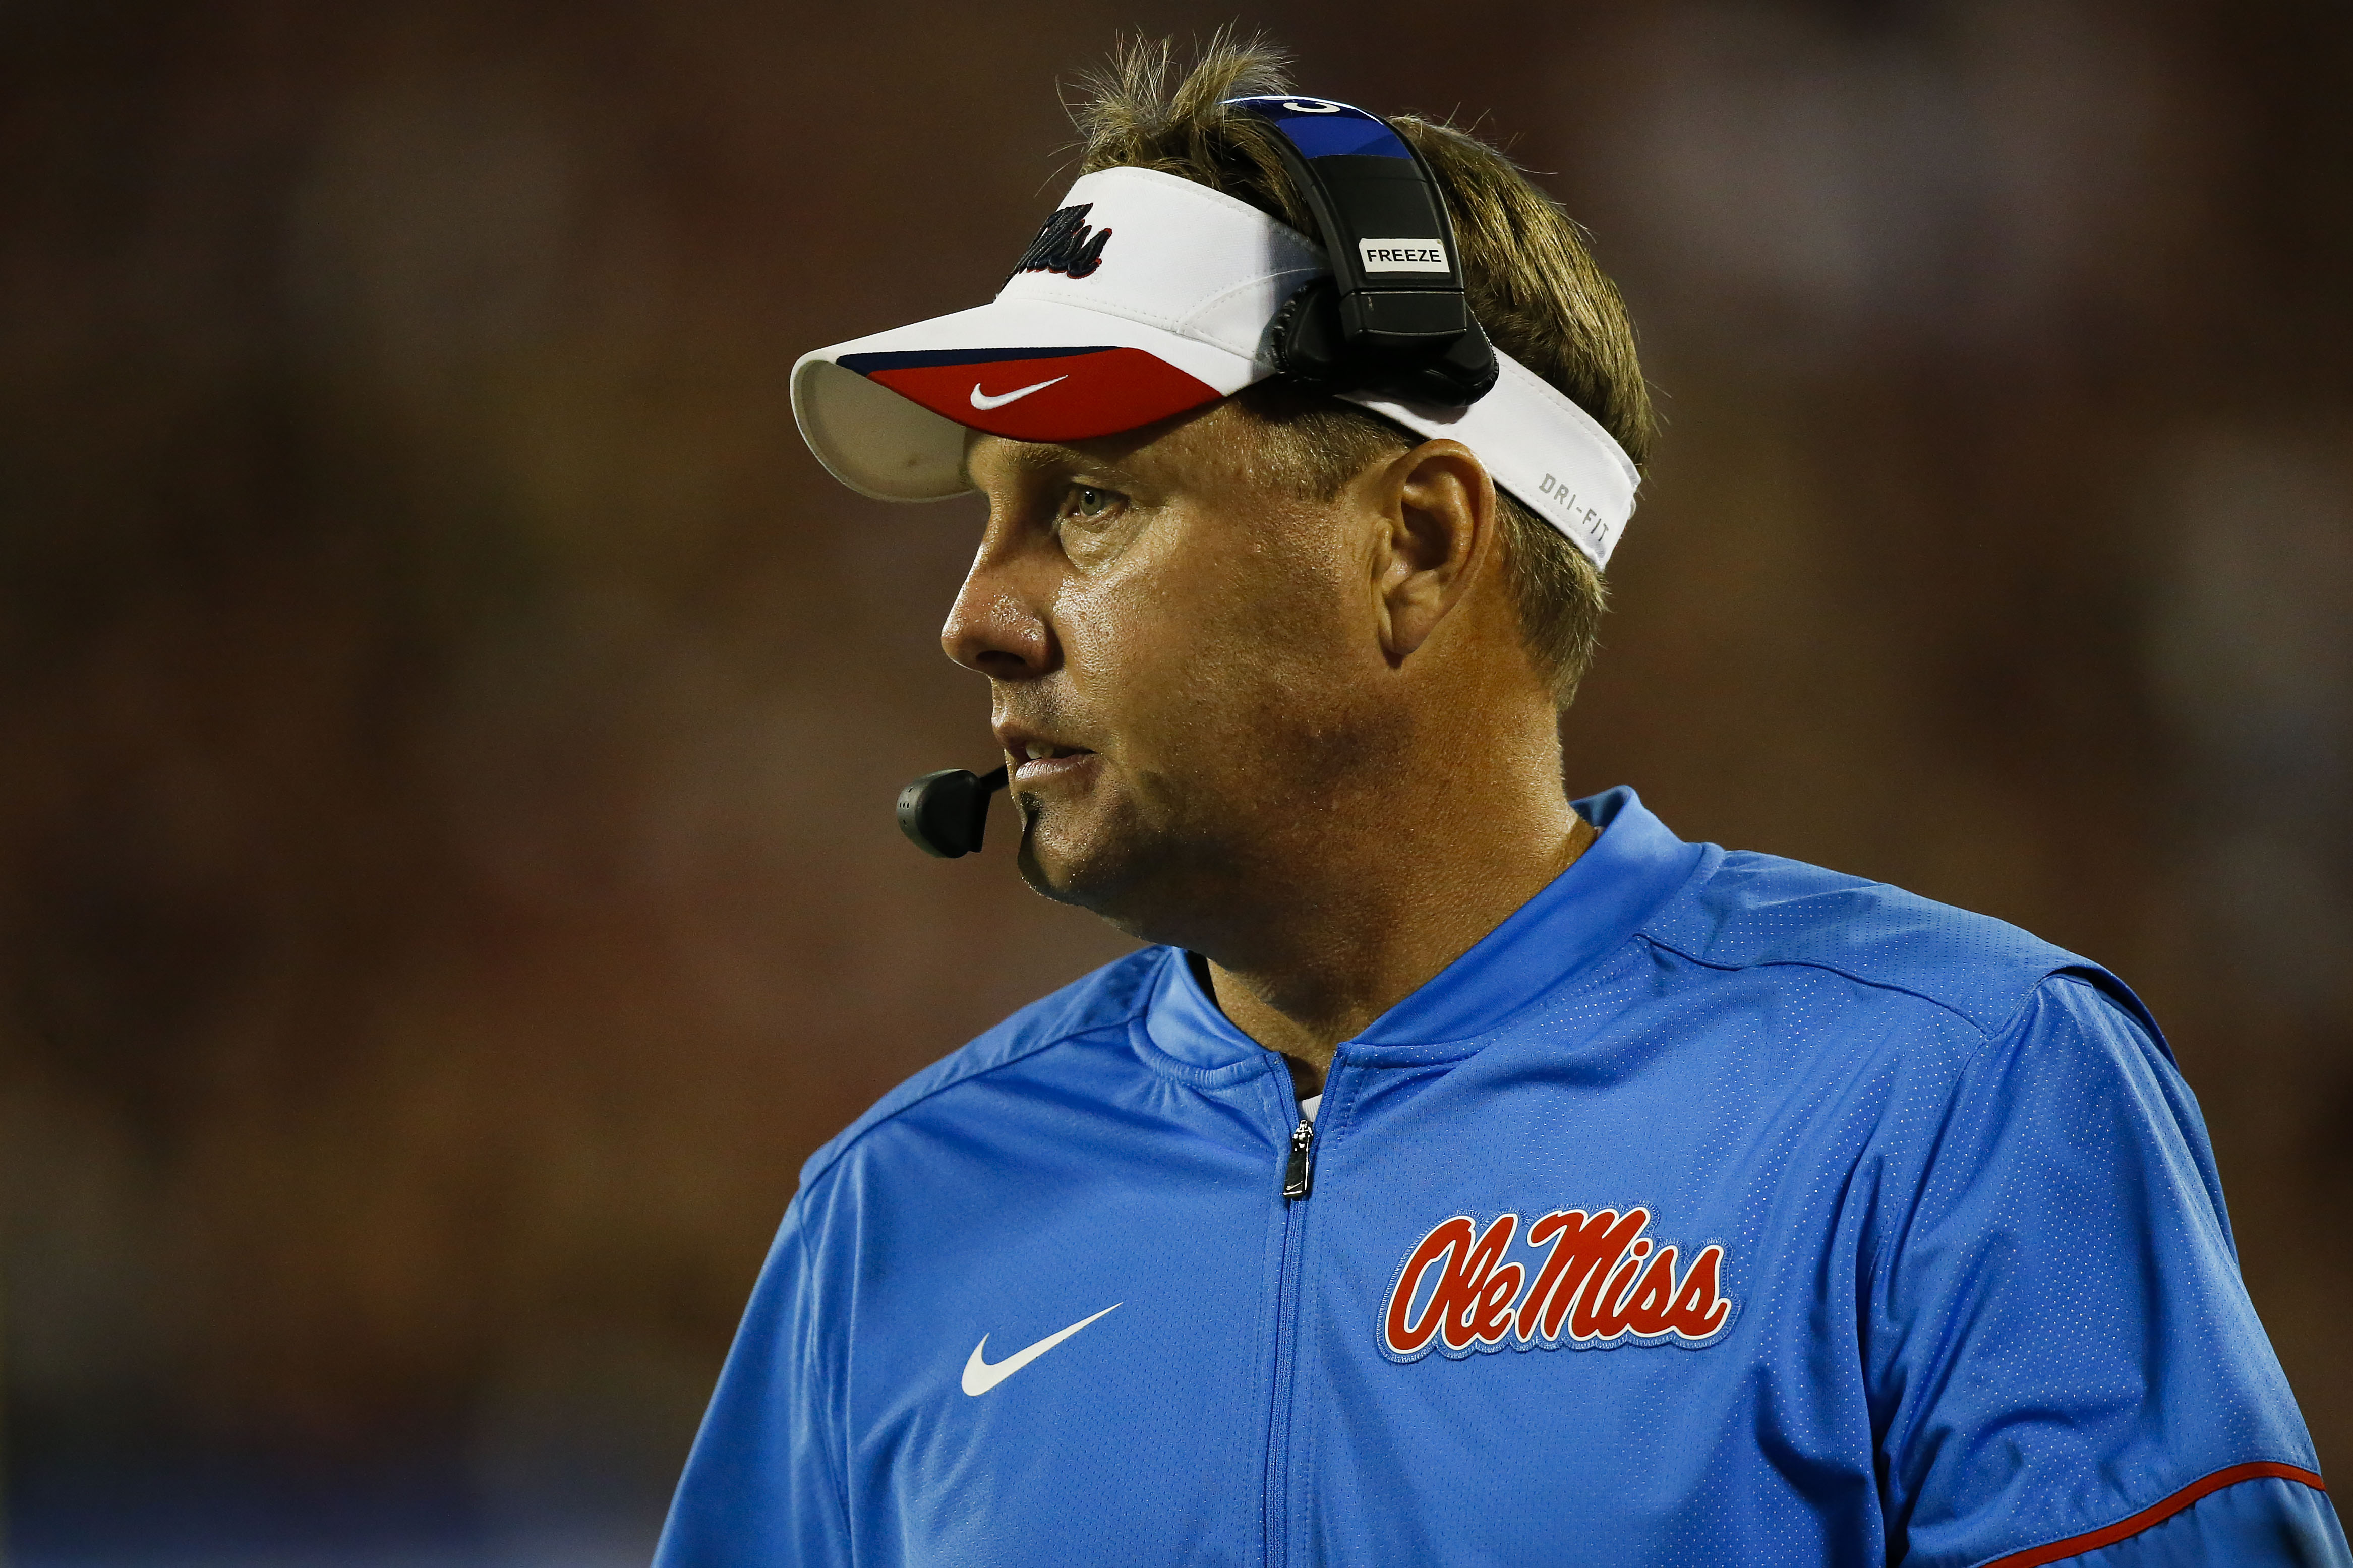 Sep 5, 2016; Orlando, FL, USA; Mississippi Rebels head coach Hugh Freeze looks on during the third quarter against the Florida State Seminoles at Camping World Stadium. Florida State Seminoles won 45-34. Mandatory Credit: Logan Bowles-USA TODAY Sports